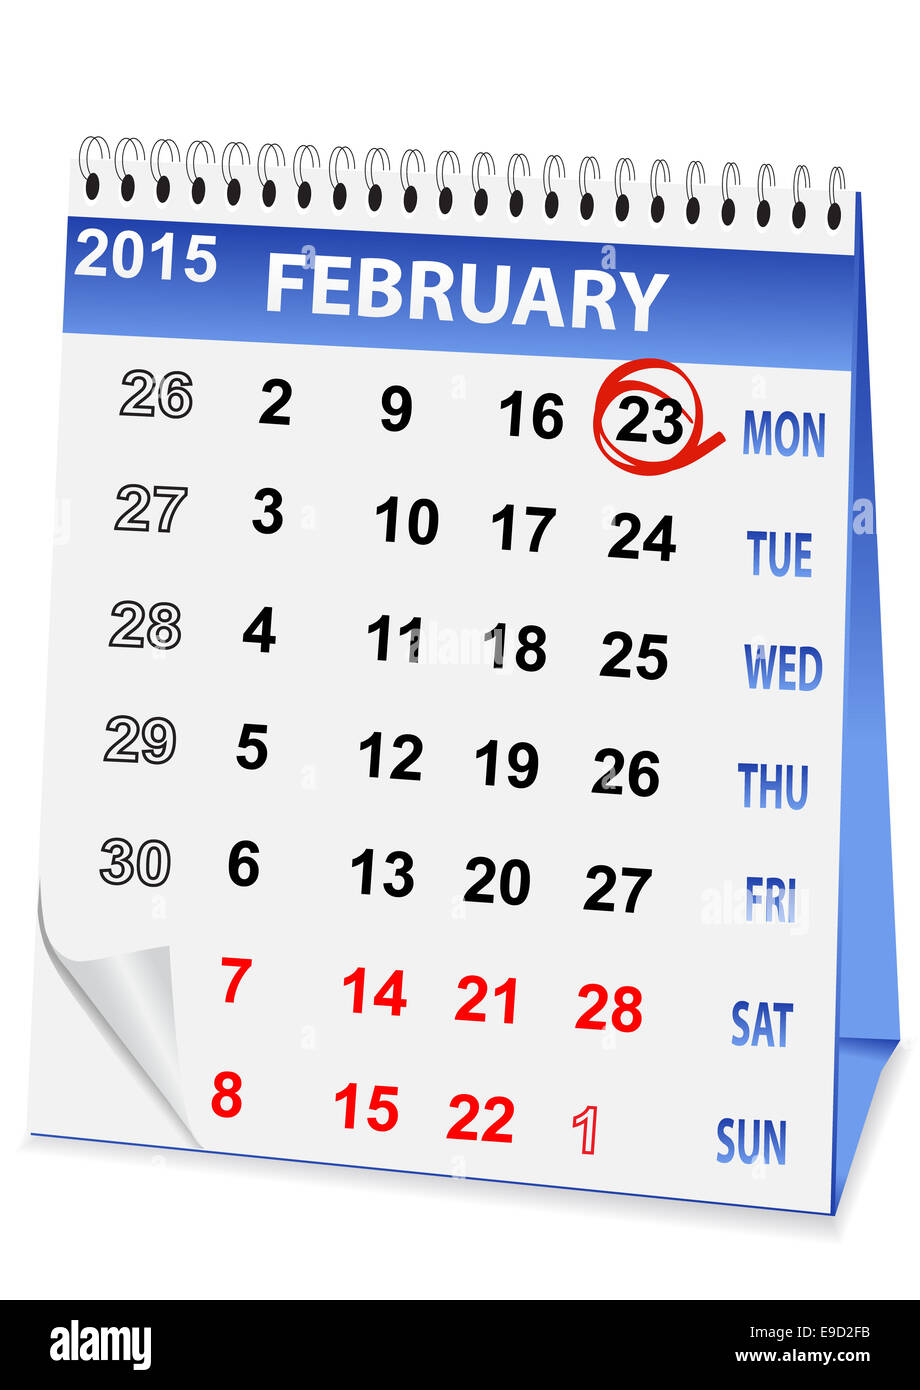 icon in the form of a calendar for 23 February - Stock Image